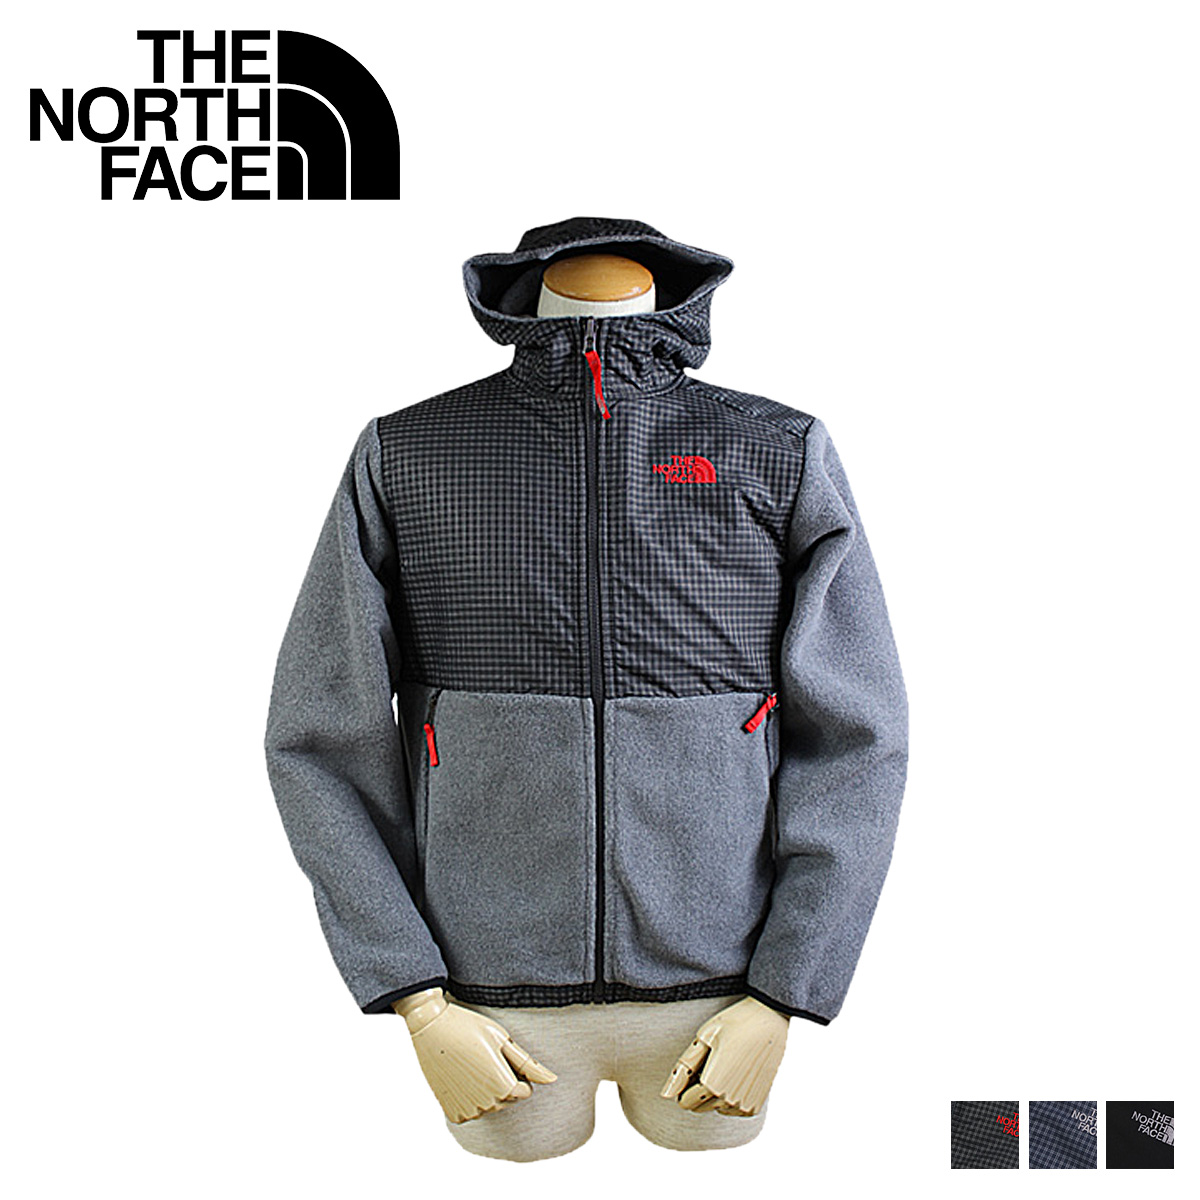 77d0e7e2b North Face THE NORTH FACE kids fleece jacket 3 color AQGC BOYS' DENALI  HOODIE men gap Dis